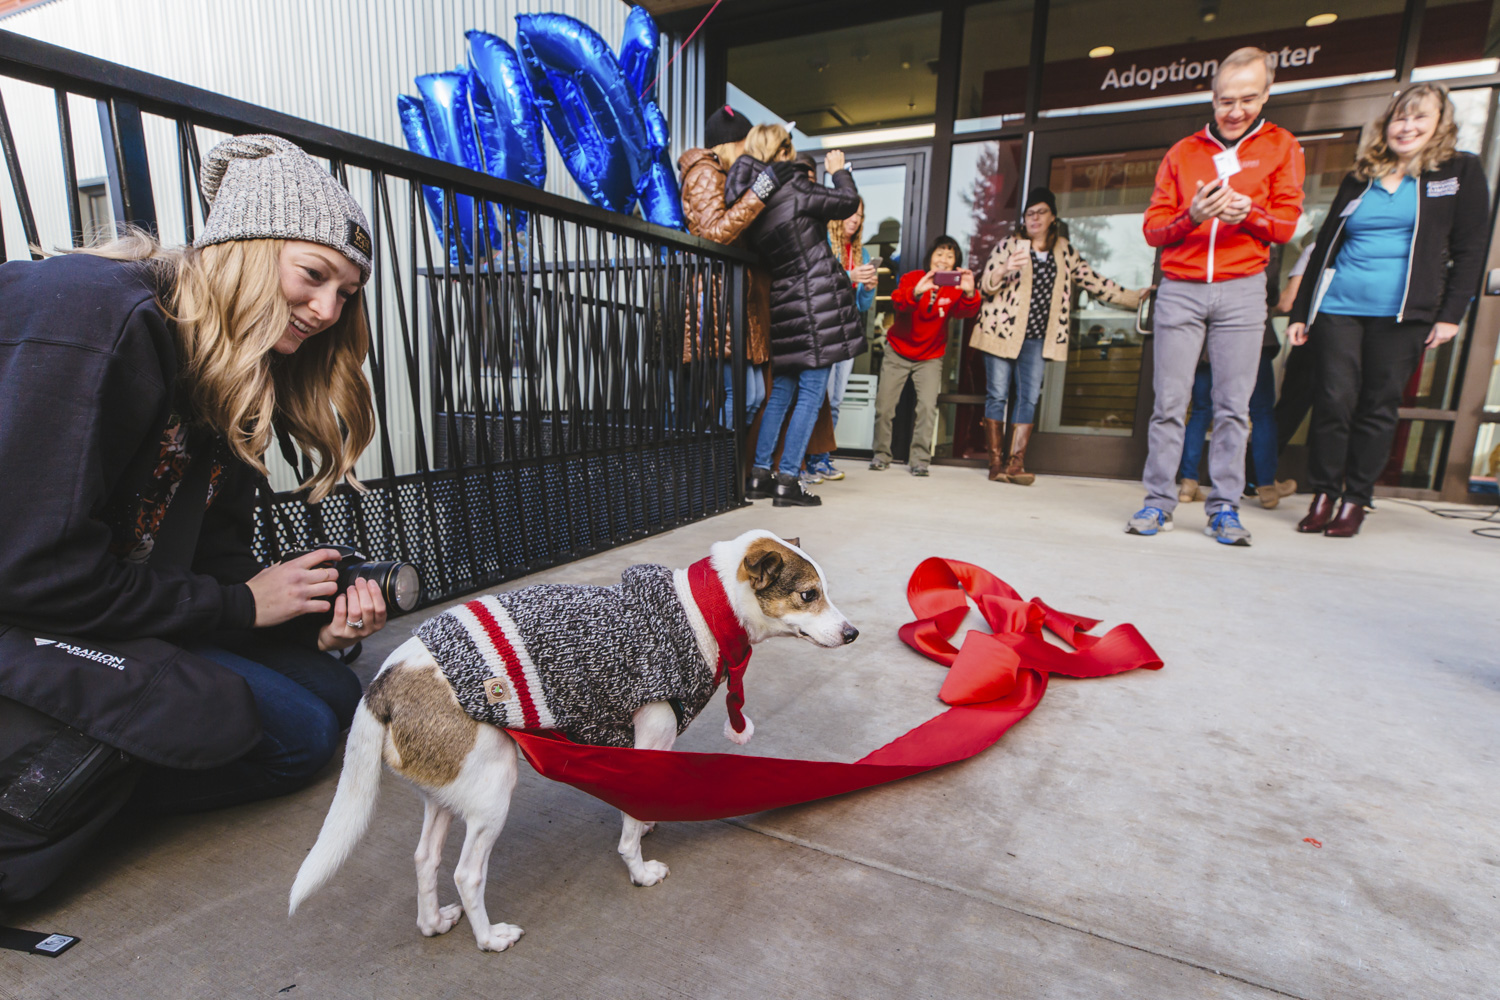 It's the grand opening of Seattle Humane's new home! The organization, established in 1897, embarked on a $30 million campaign to build a 57,000 square foot shelter to replace its aging facility. After 7 years of planning and fundraising, and nearly 2 years of construction, Seattle Humane is fully introducing their operating space to the pubic for the first time. There was everything from ribbon cutting, to a kitten obstacle courses, and a even a competition between our KOMO morning anchor team: Cayle Thompson, Kelly Koopmans and Ryan Yamamoto! (Image: Sunita Martini / Seattle Refined)